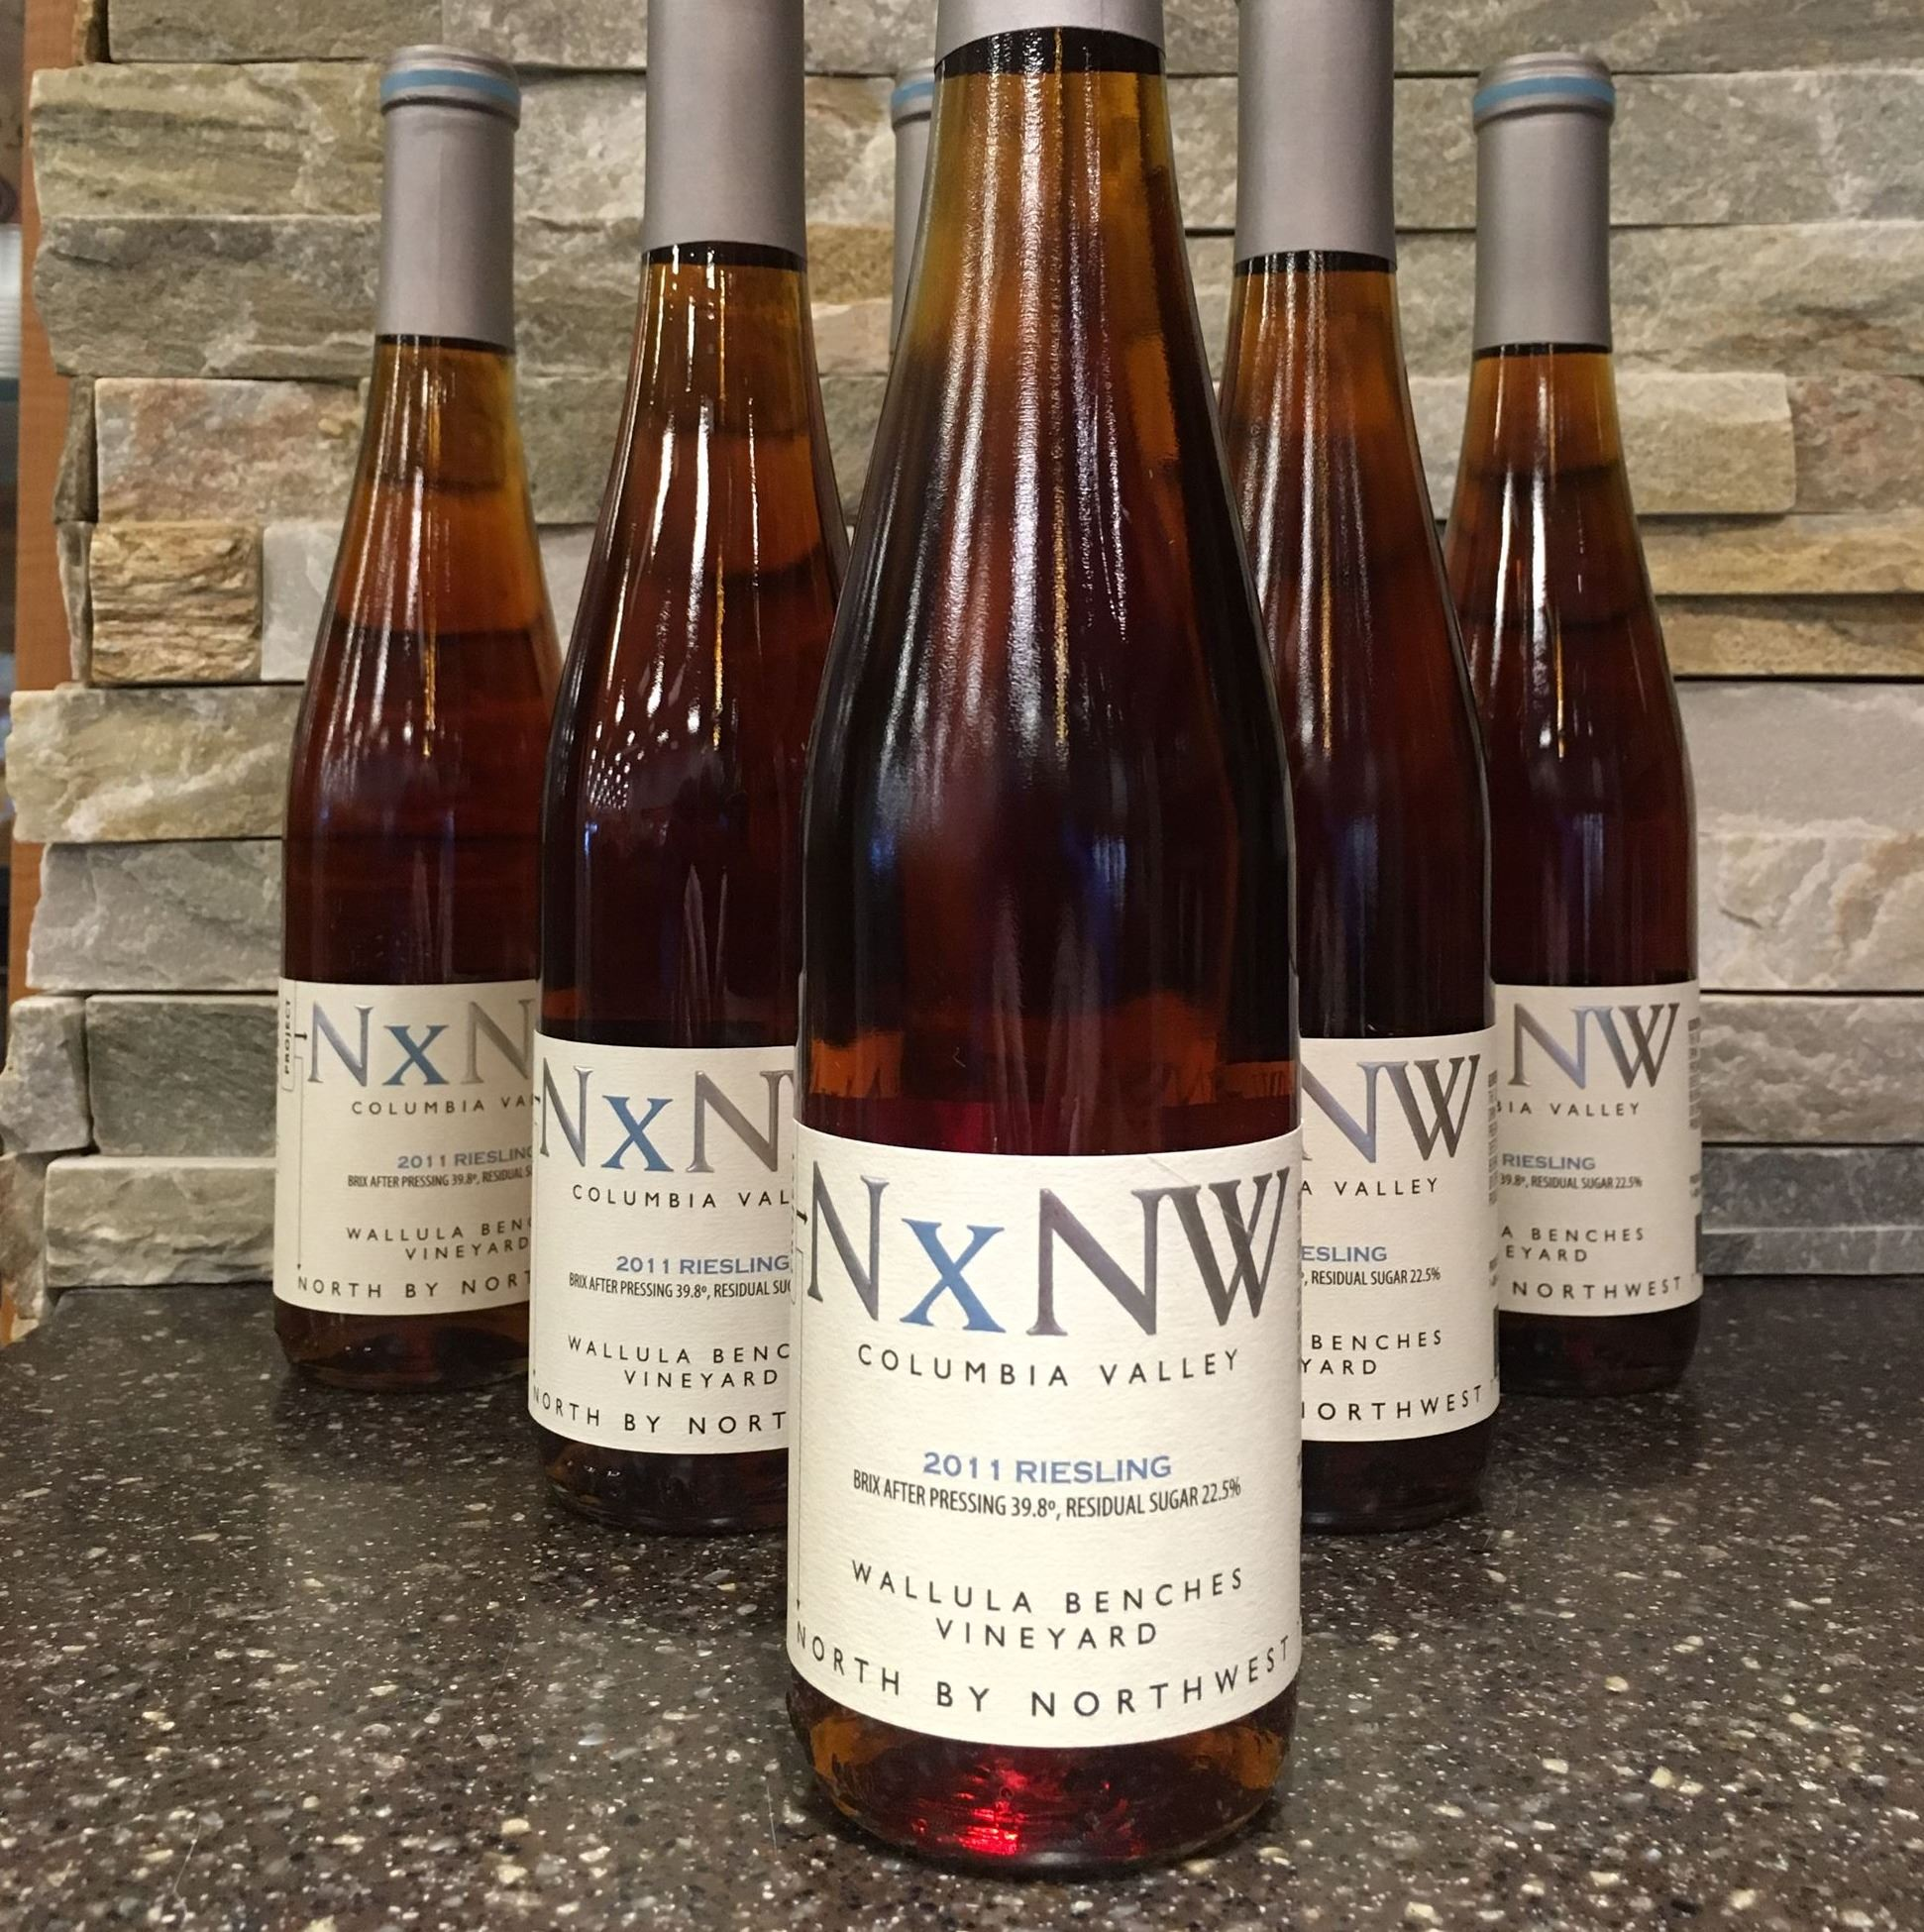 NxNW Riesling Eiswein